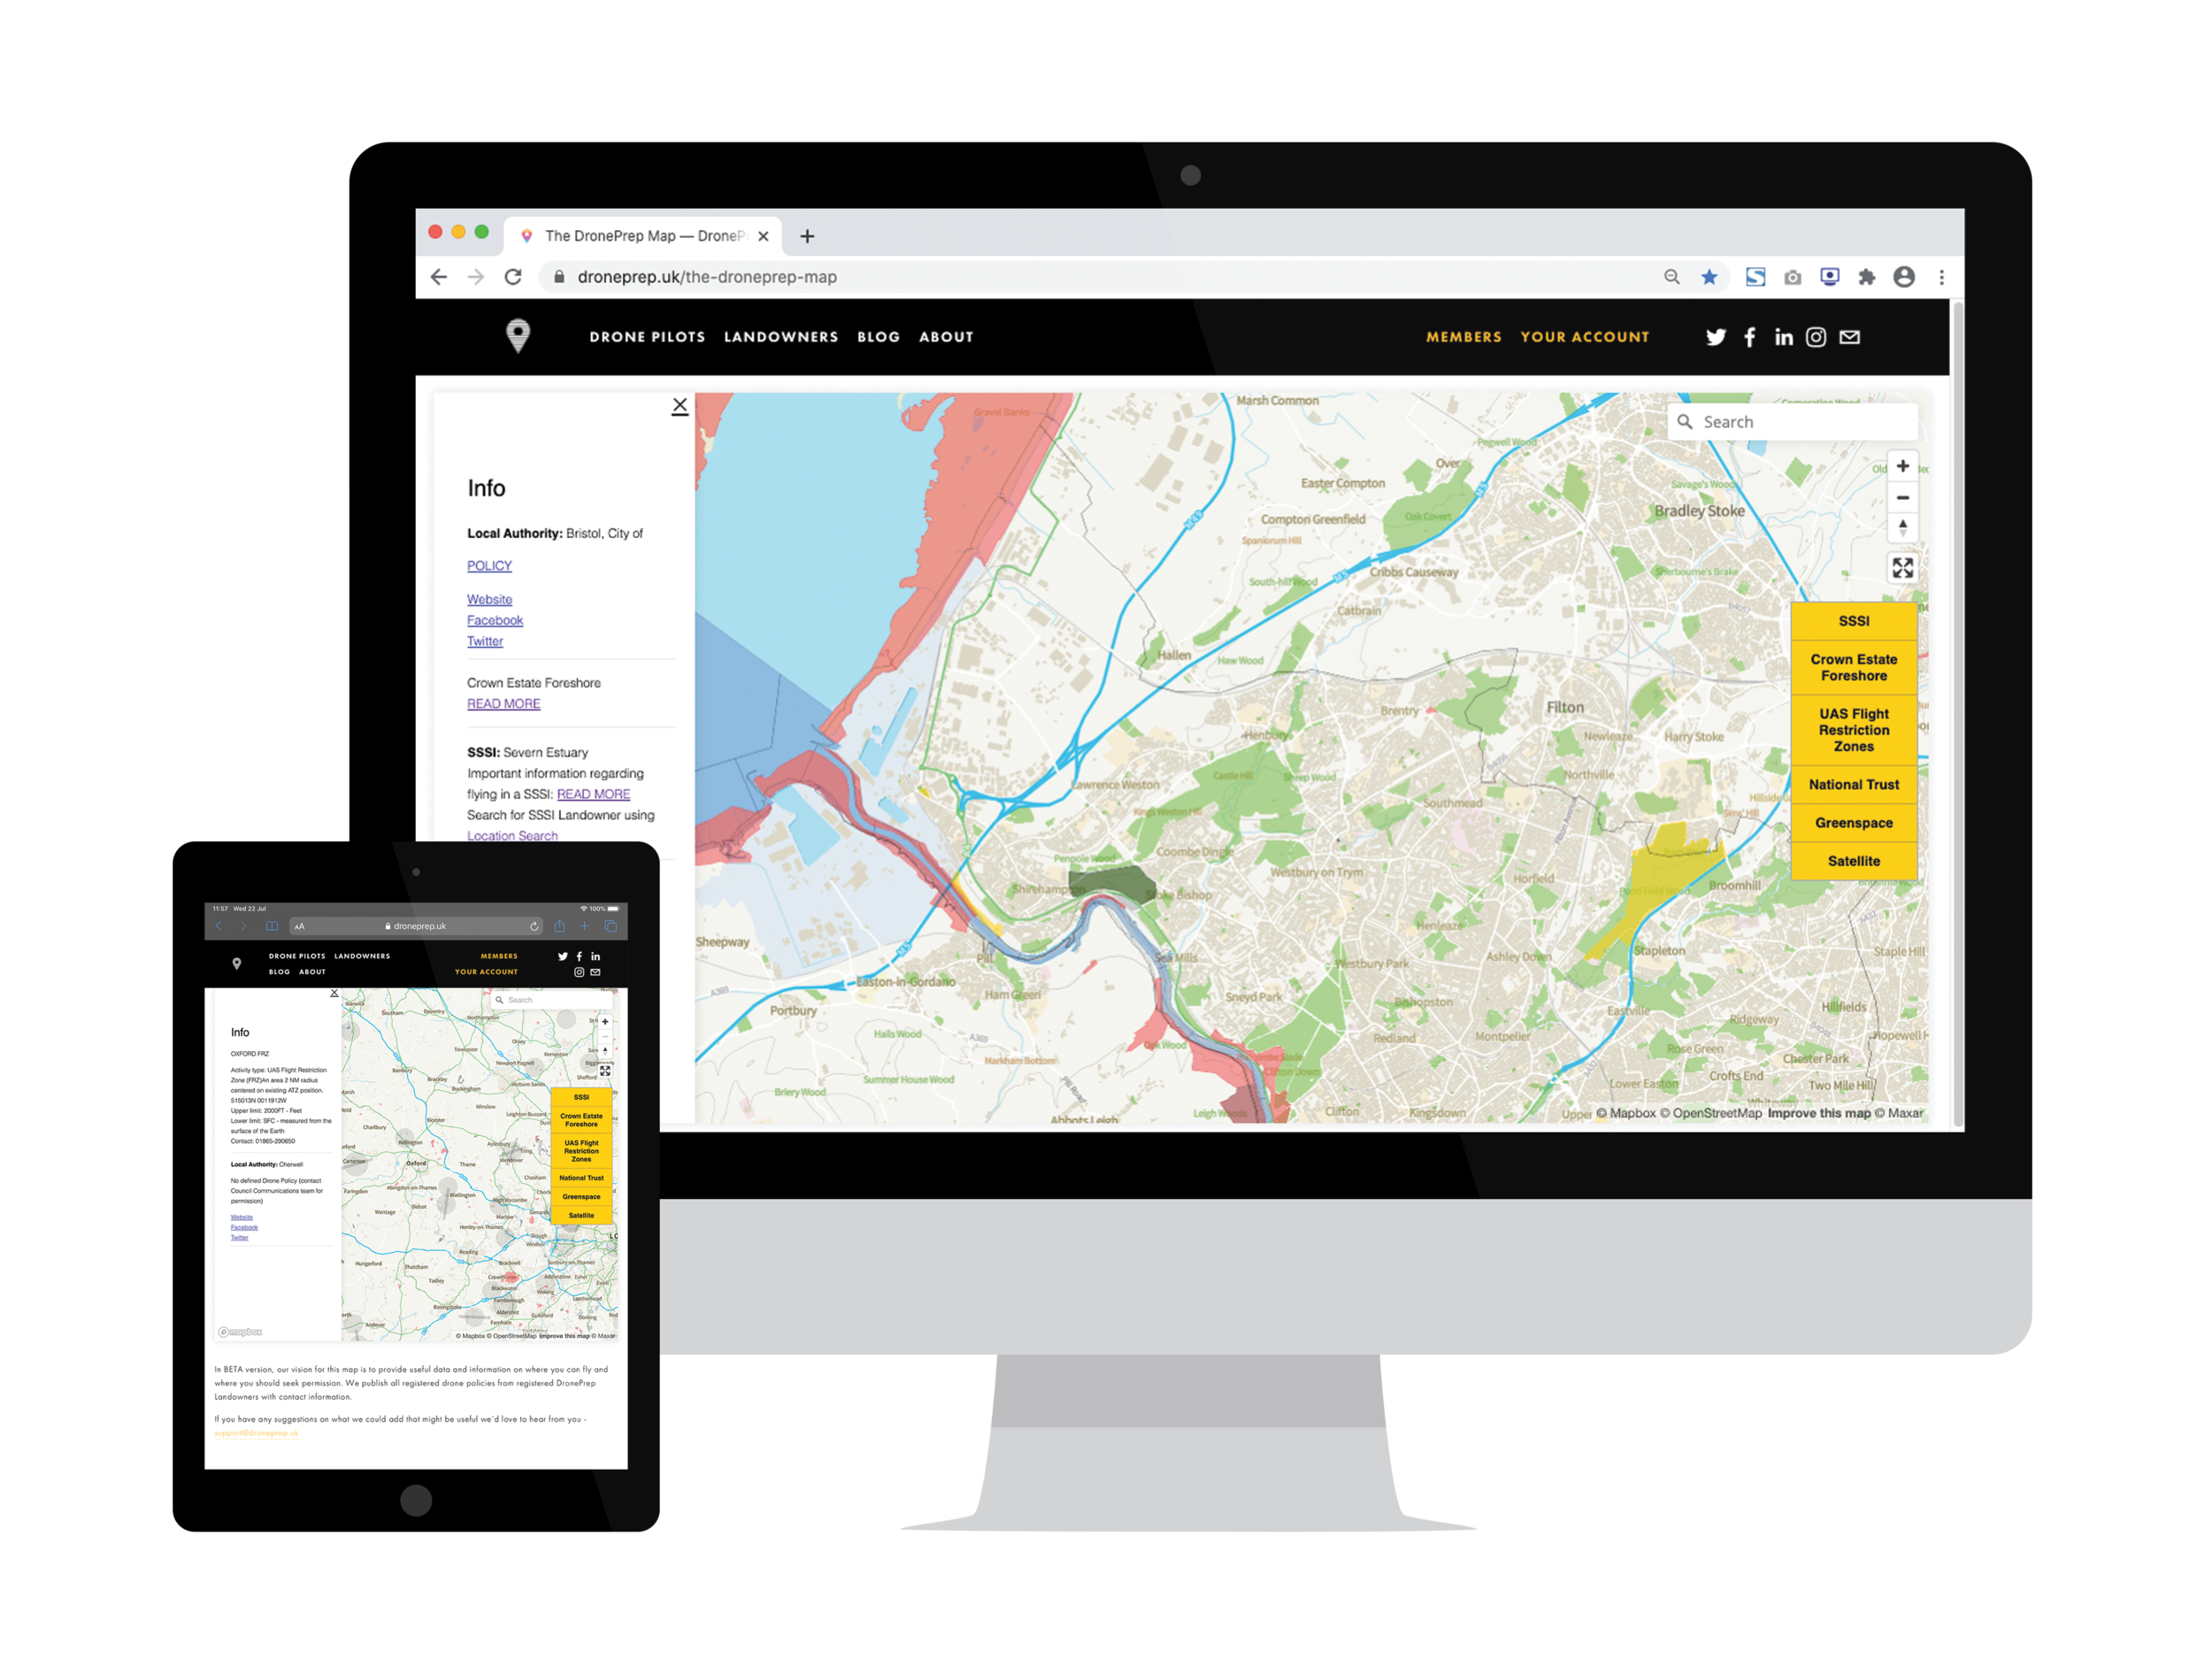 You can see SSSI locations on the DronePrep Map - REgister for free to see sssi's on the droneprep map